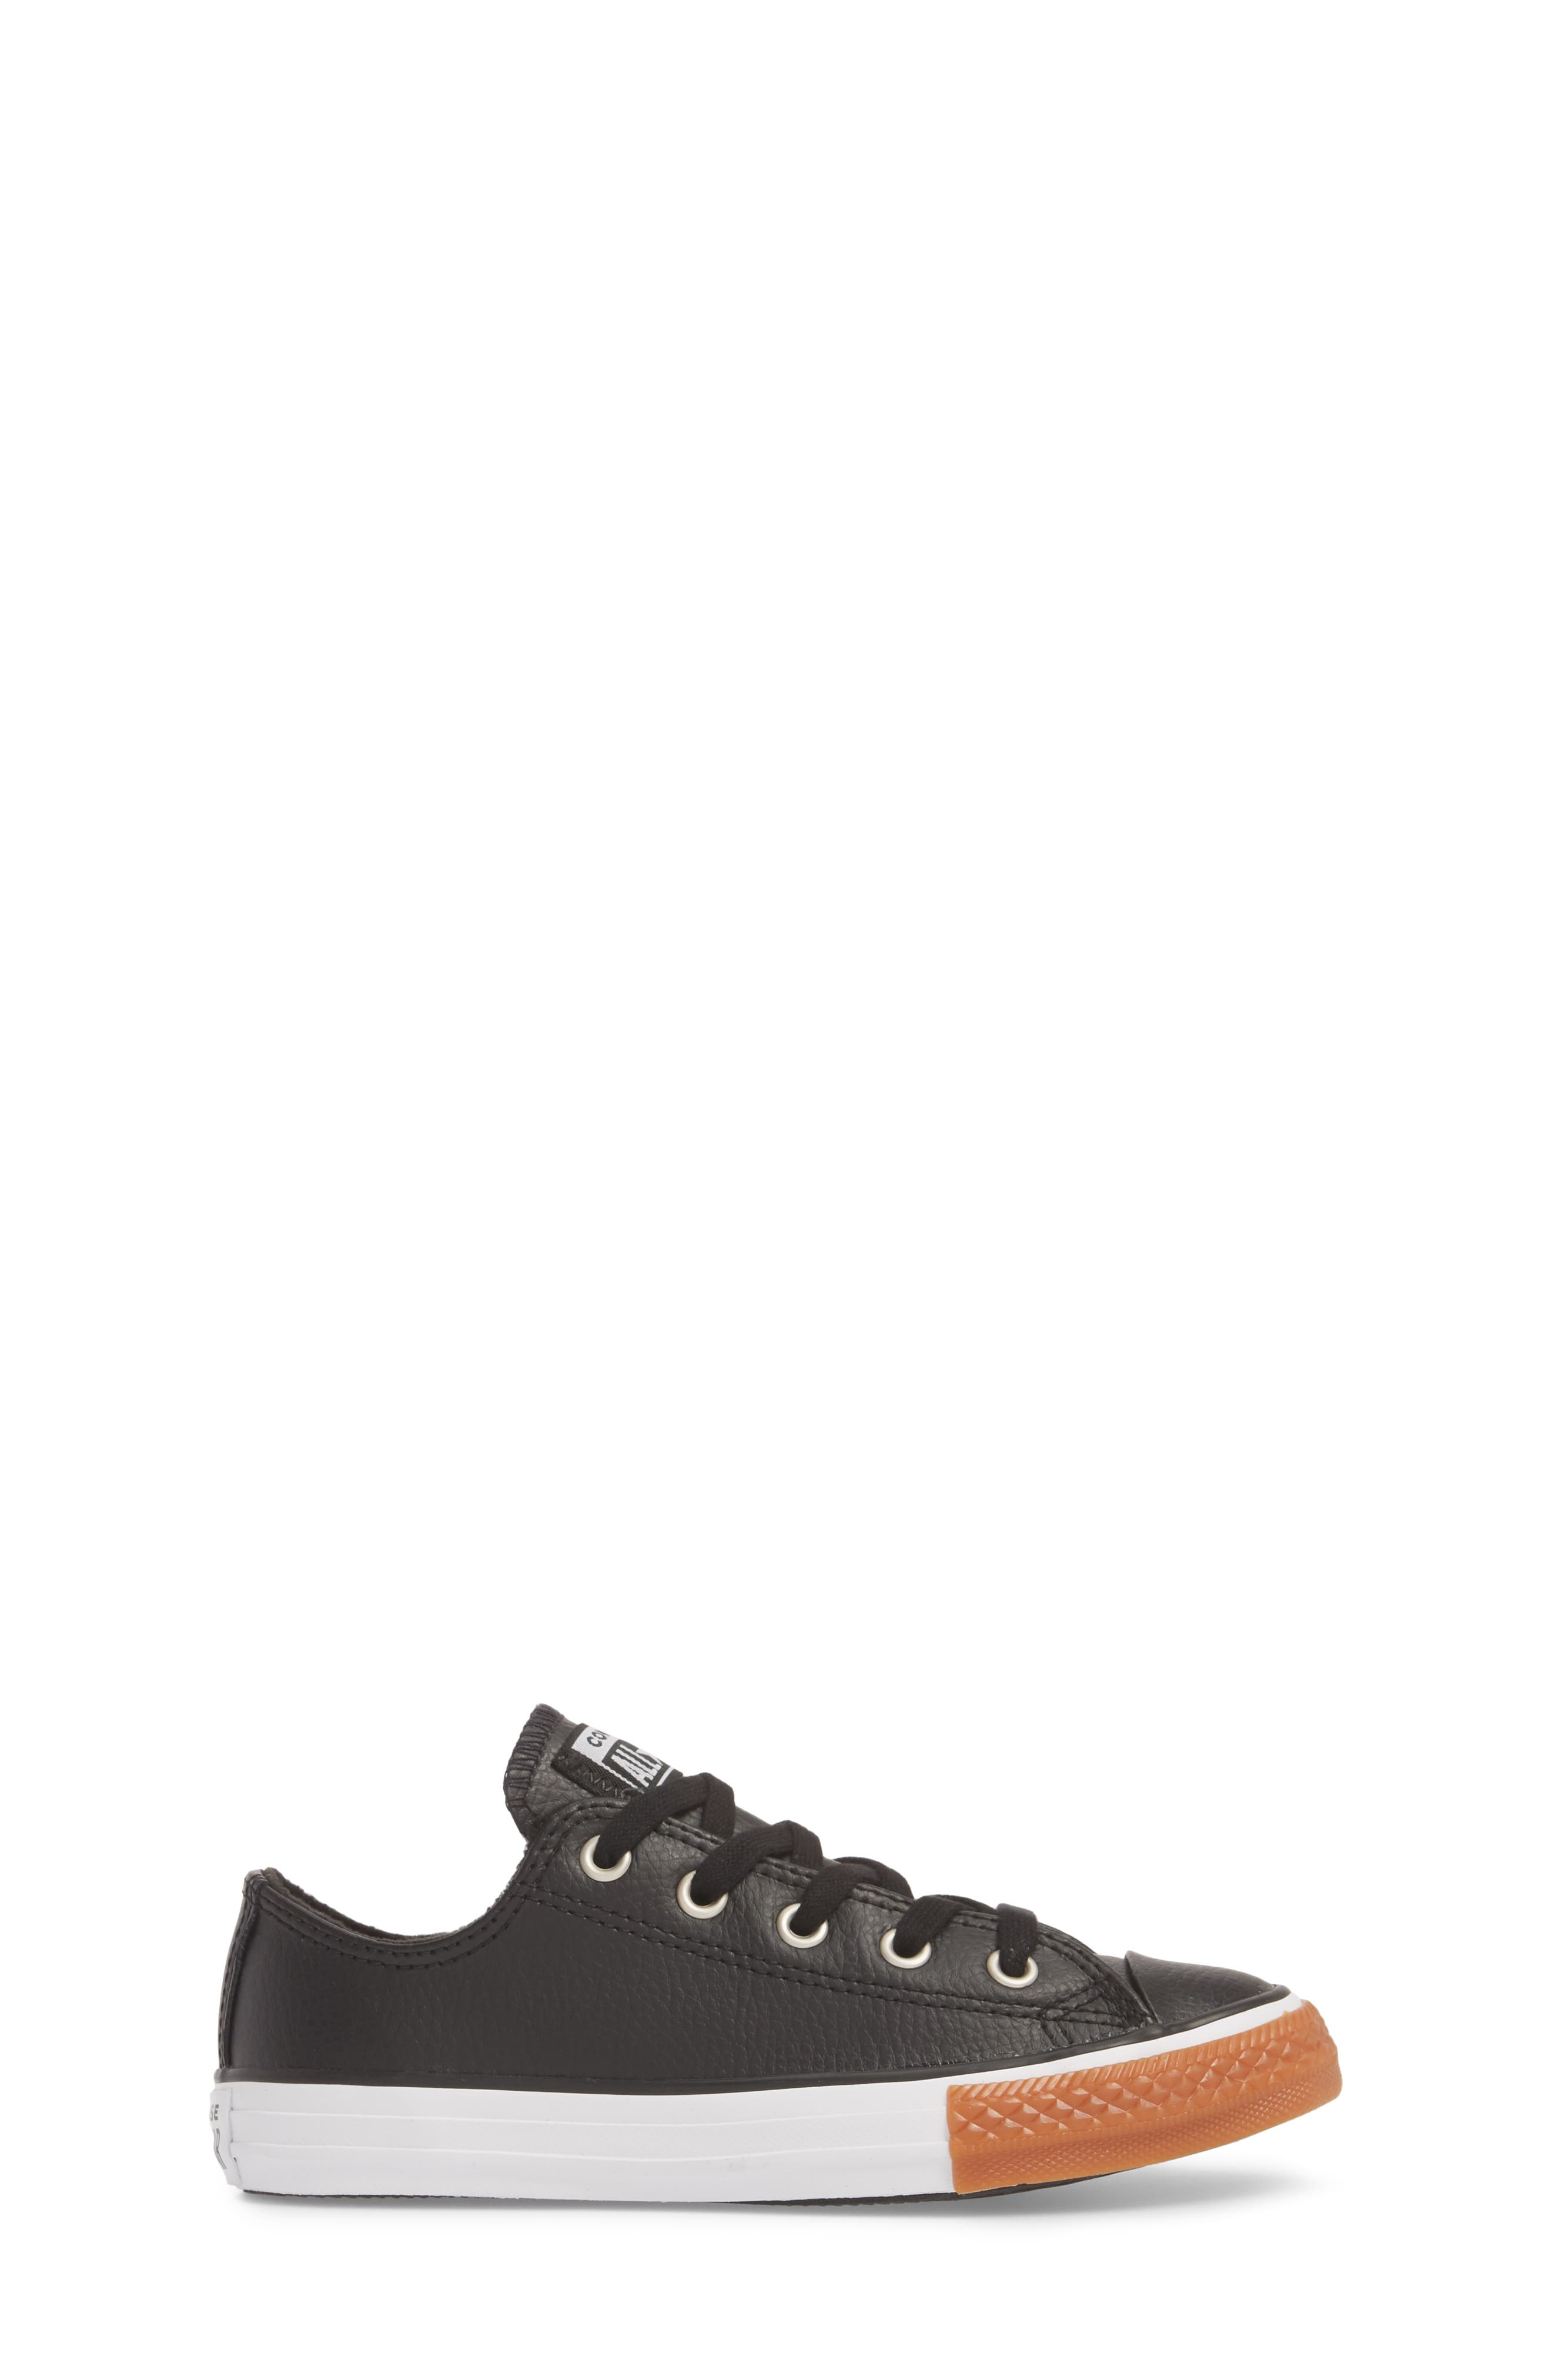 Chuck Taylor<sup>®</sup> All Star<sup>®</sup> Ox Faux Leather Sneaker,                             Alternate thumbnail 3, color,                             Black